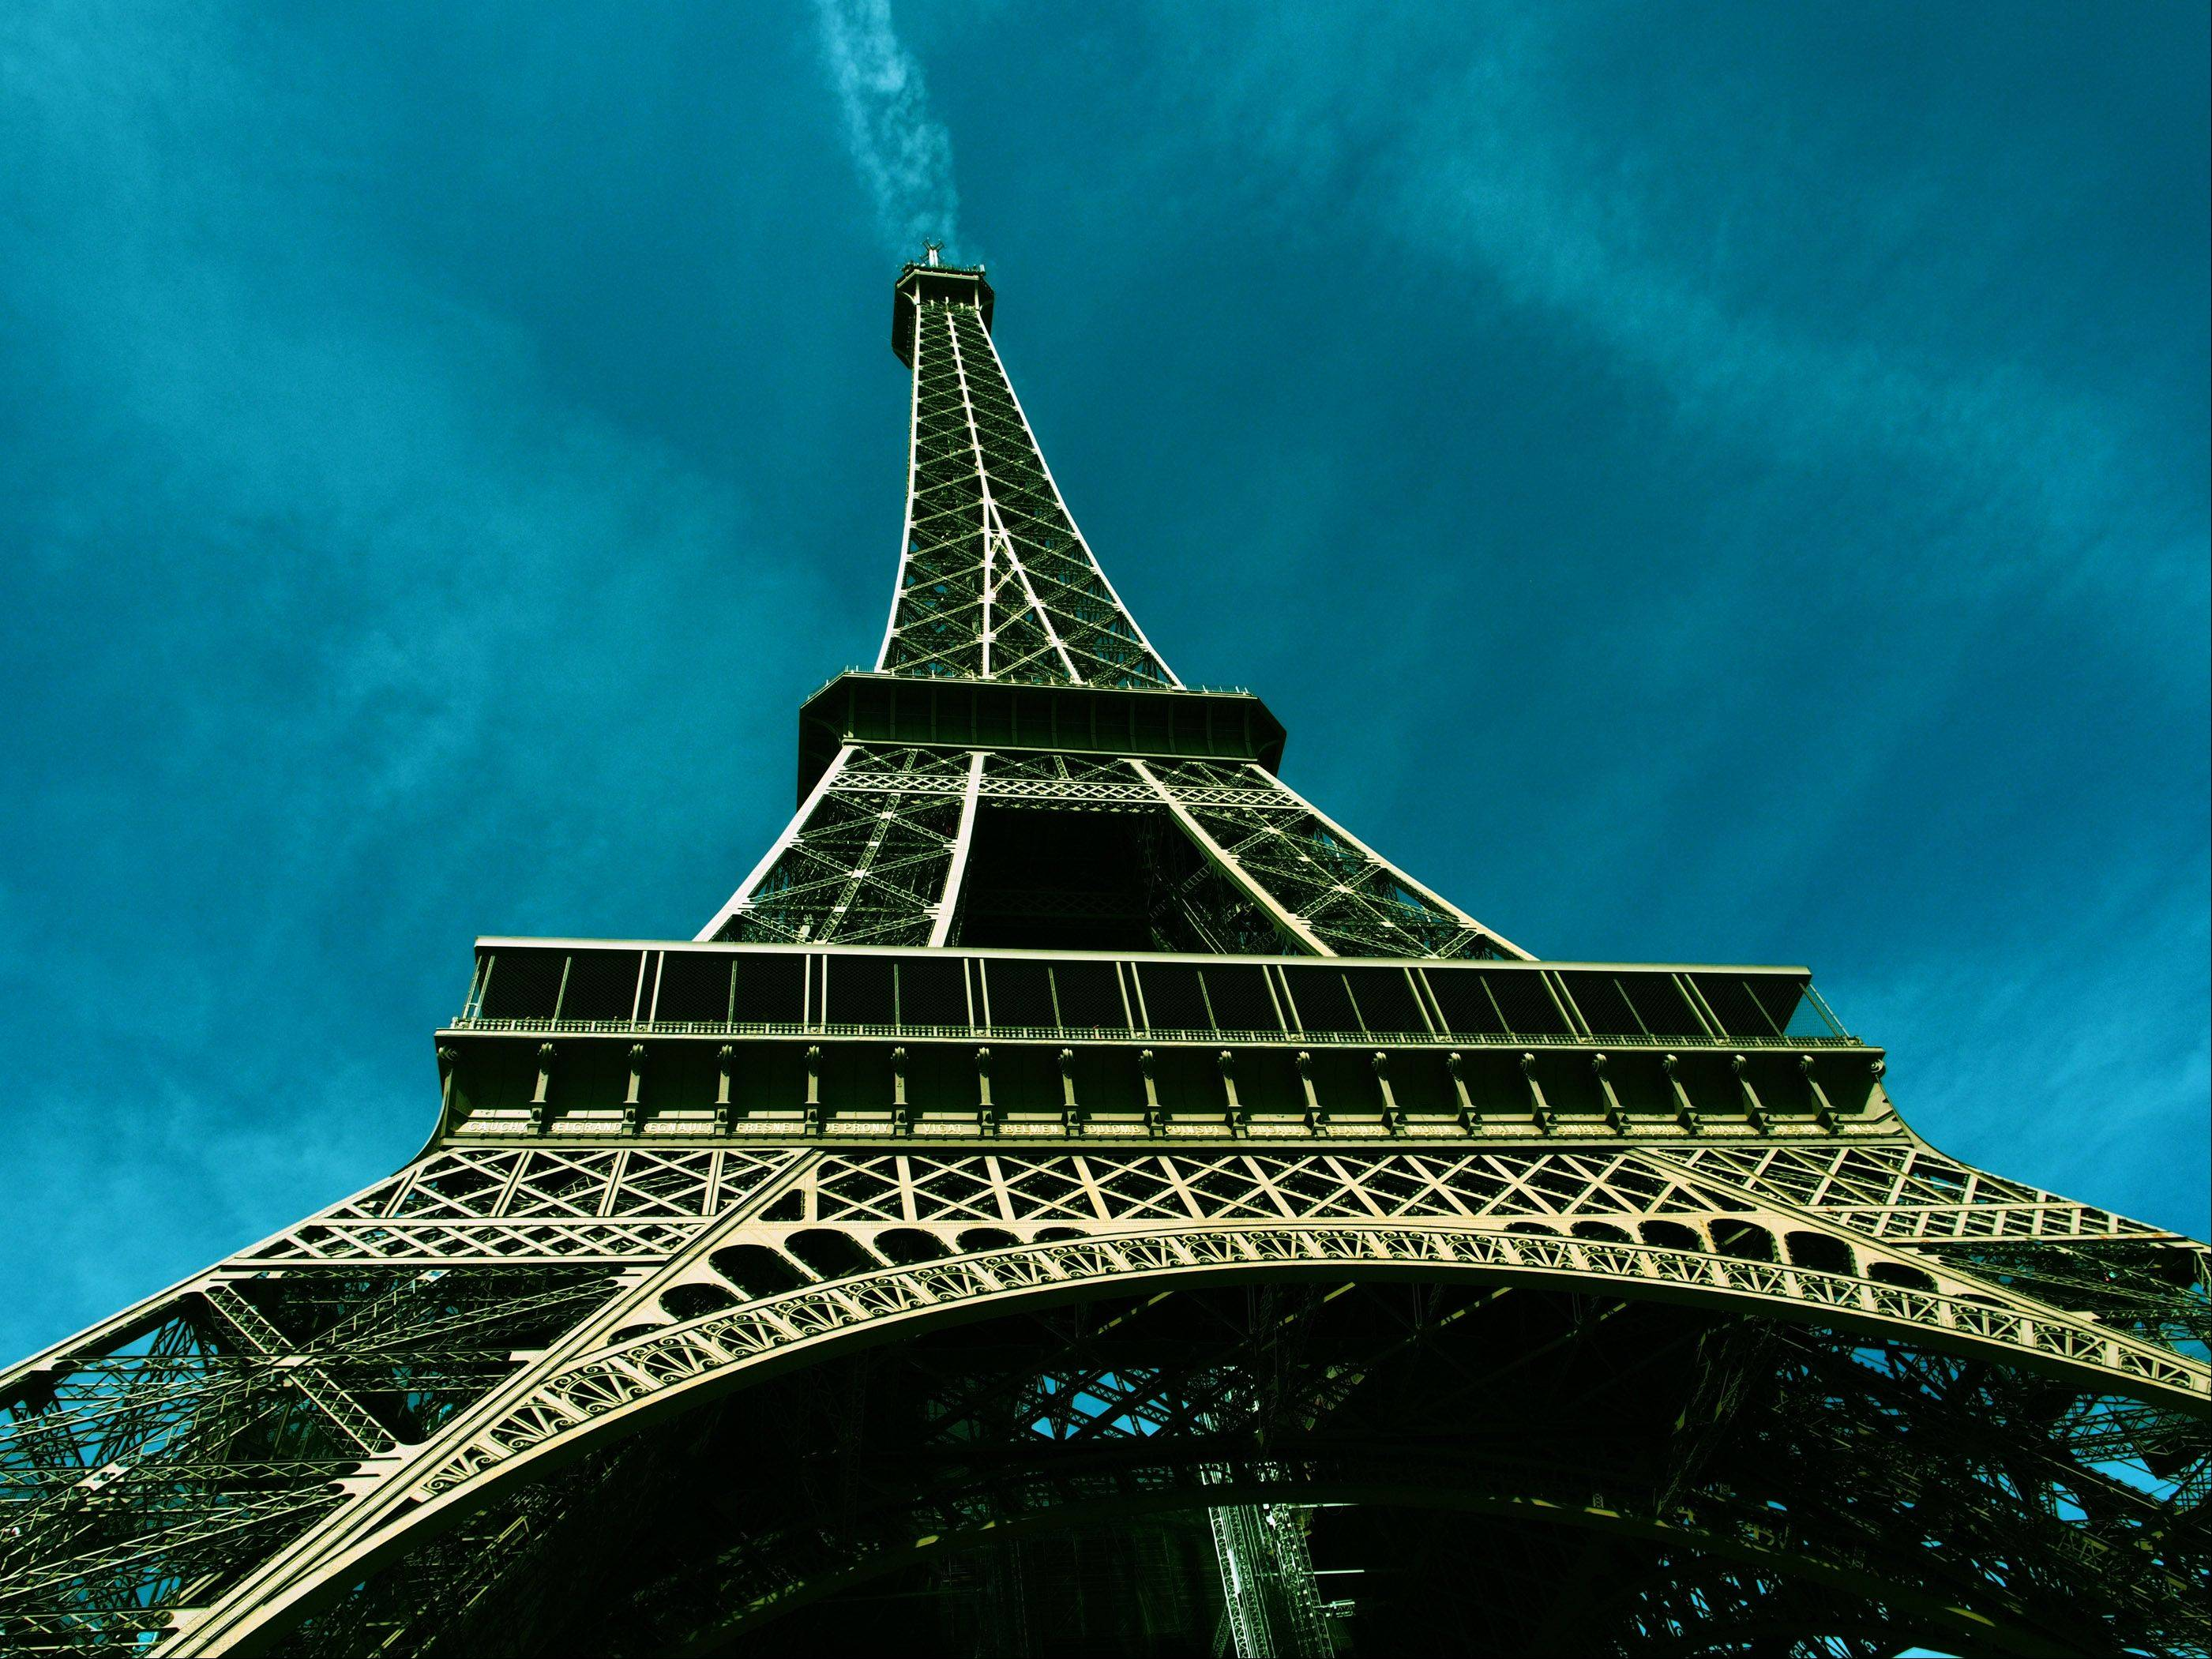 I took the photo of the Eiffel Tower in April and just happened to catch a jet plane's contrail intersecting the top of the tower.